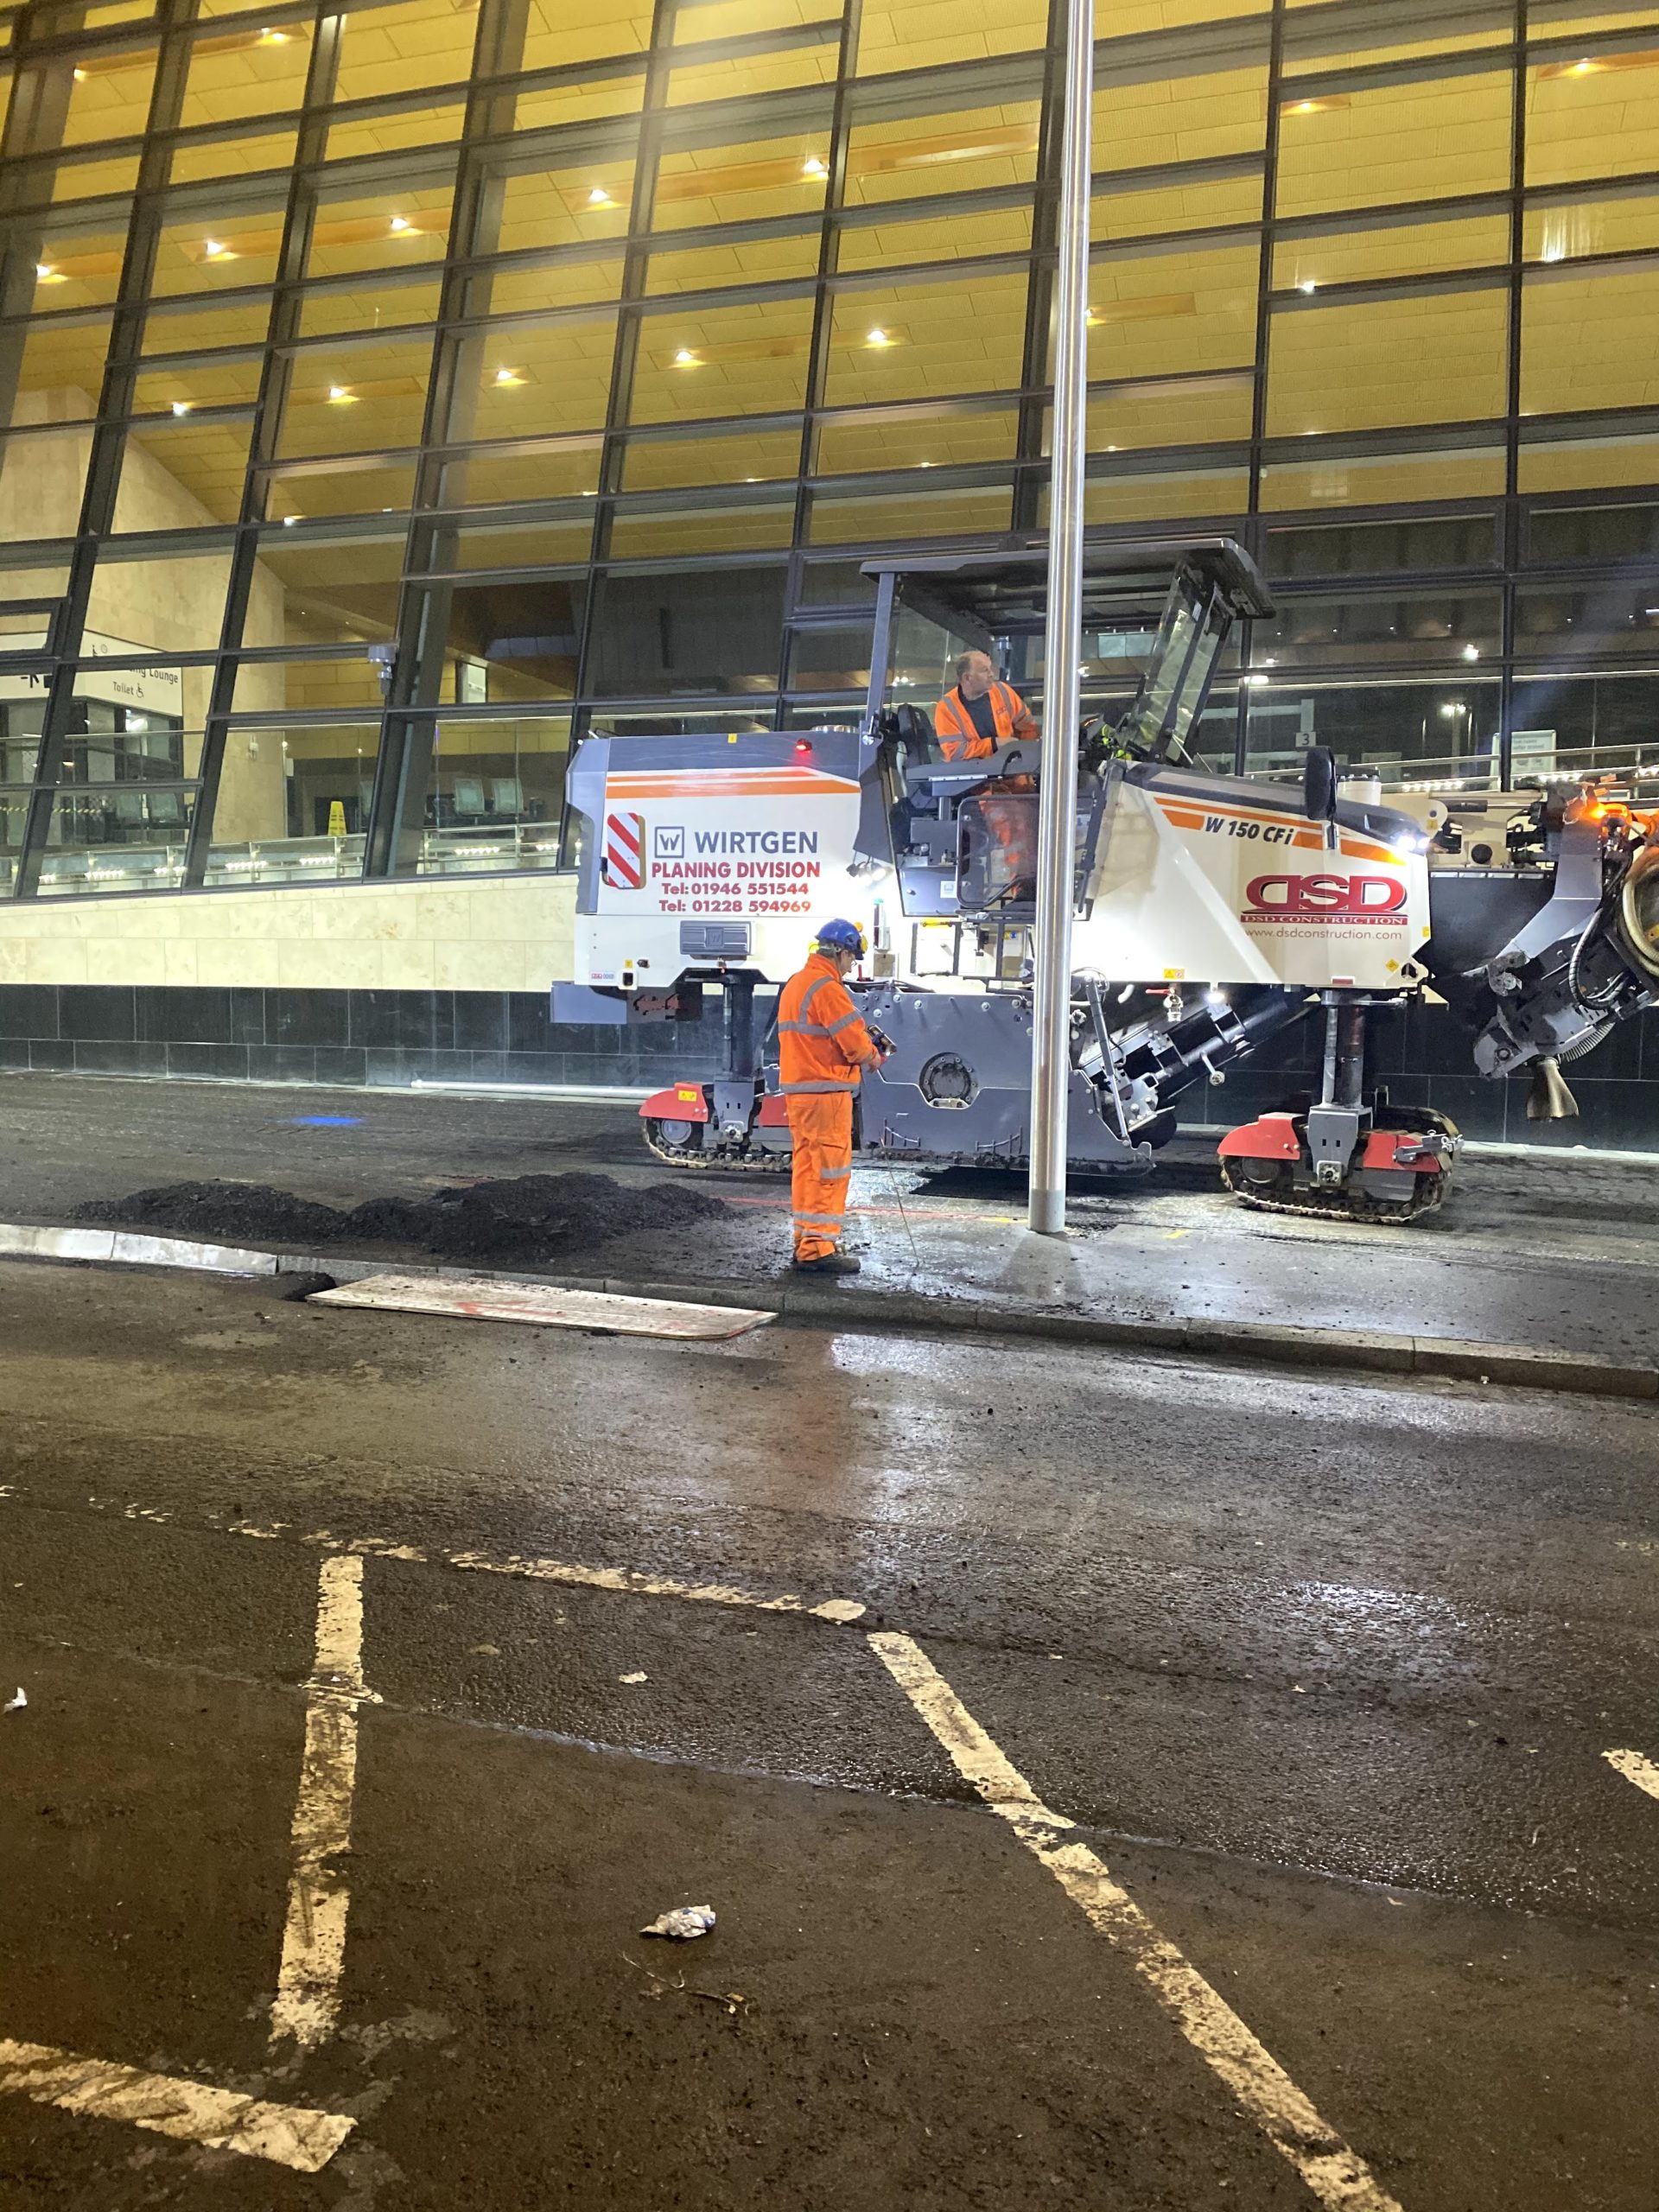 Men in orange high vis working at a train station at night